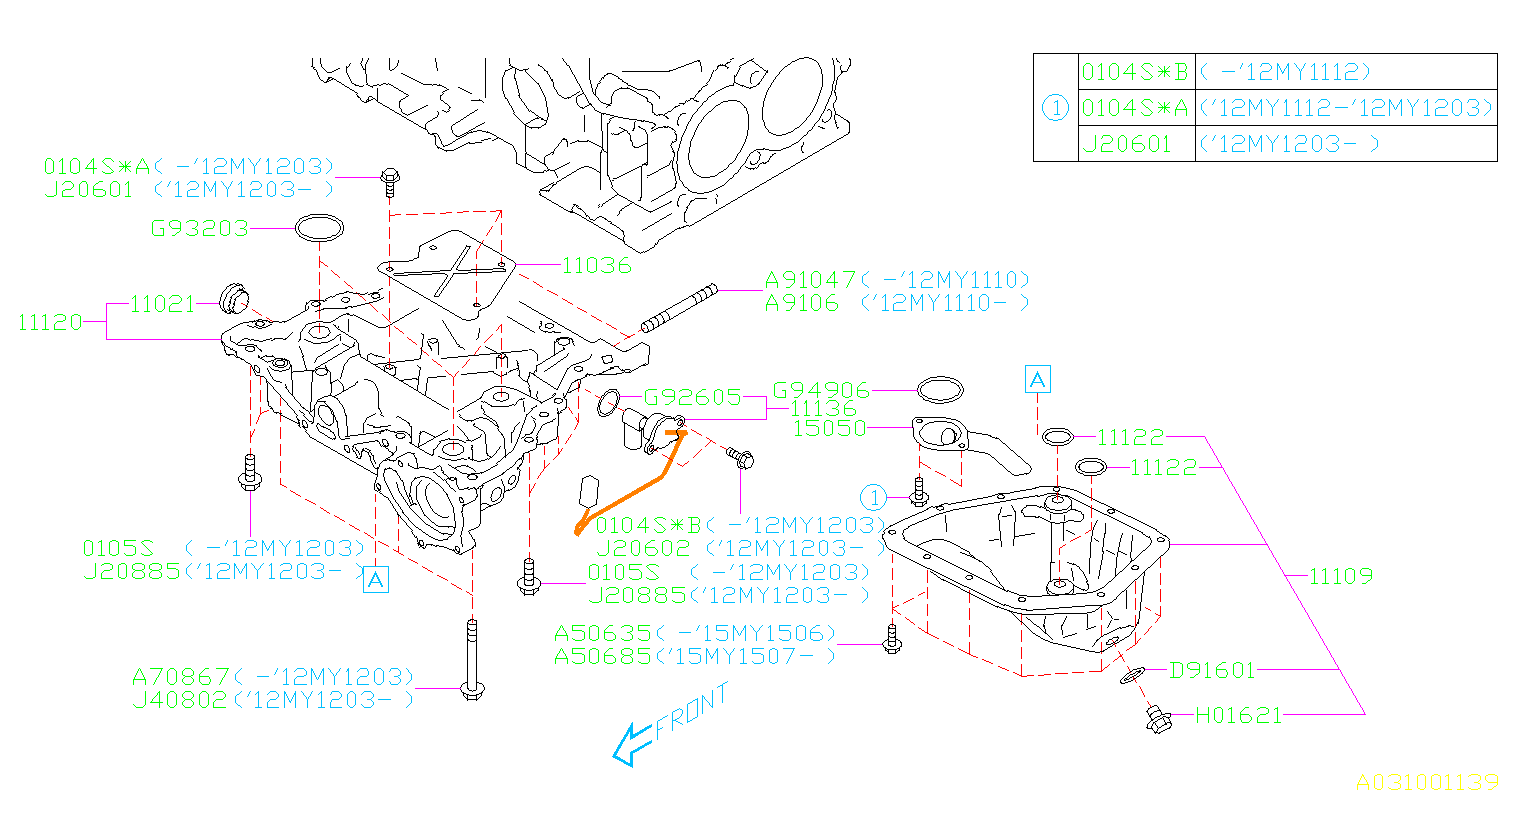 hight resolution of subaru 2 2 engine oil diagram wiring library rh 17 skriptoase de 2004 subaru outback engine diagram 2004 subaru outback engine diagram